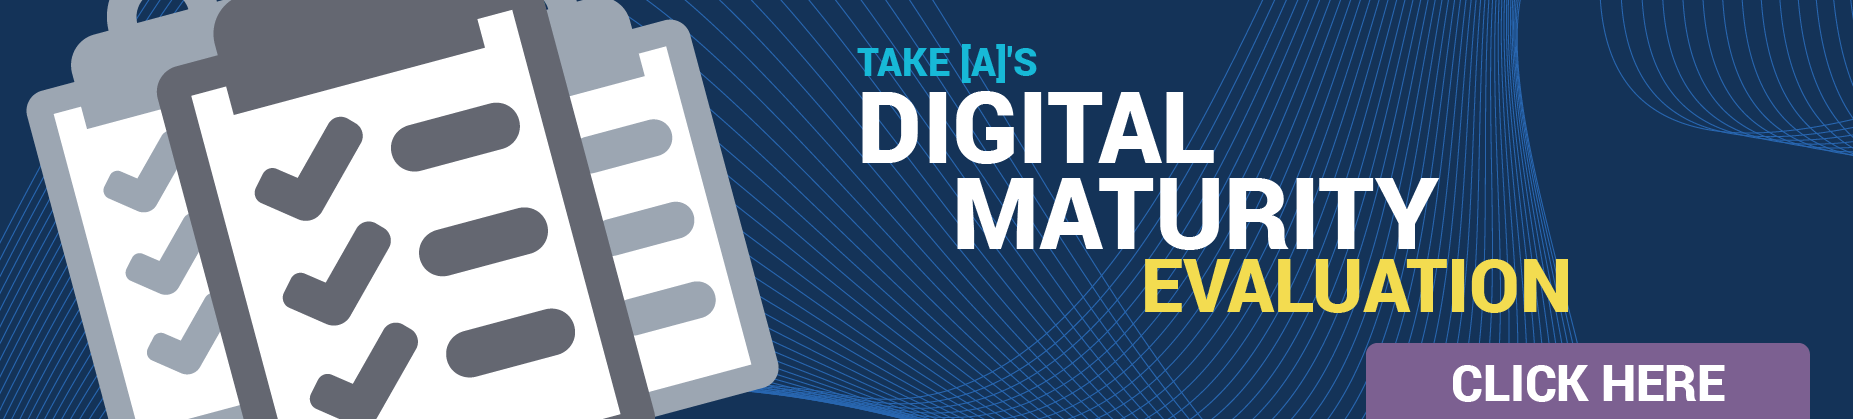 Take [A]'s Digital Maturity Evaluation